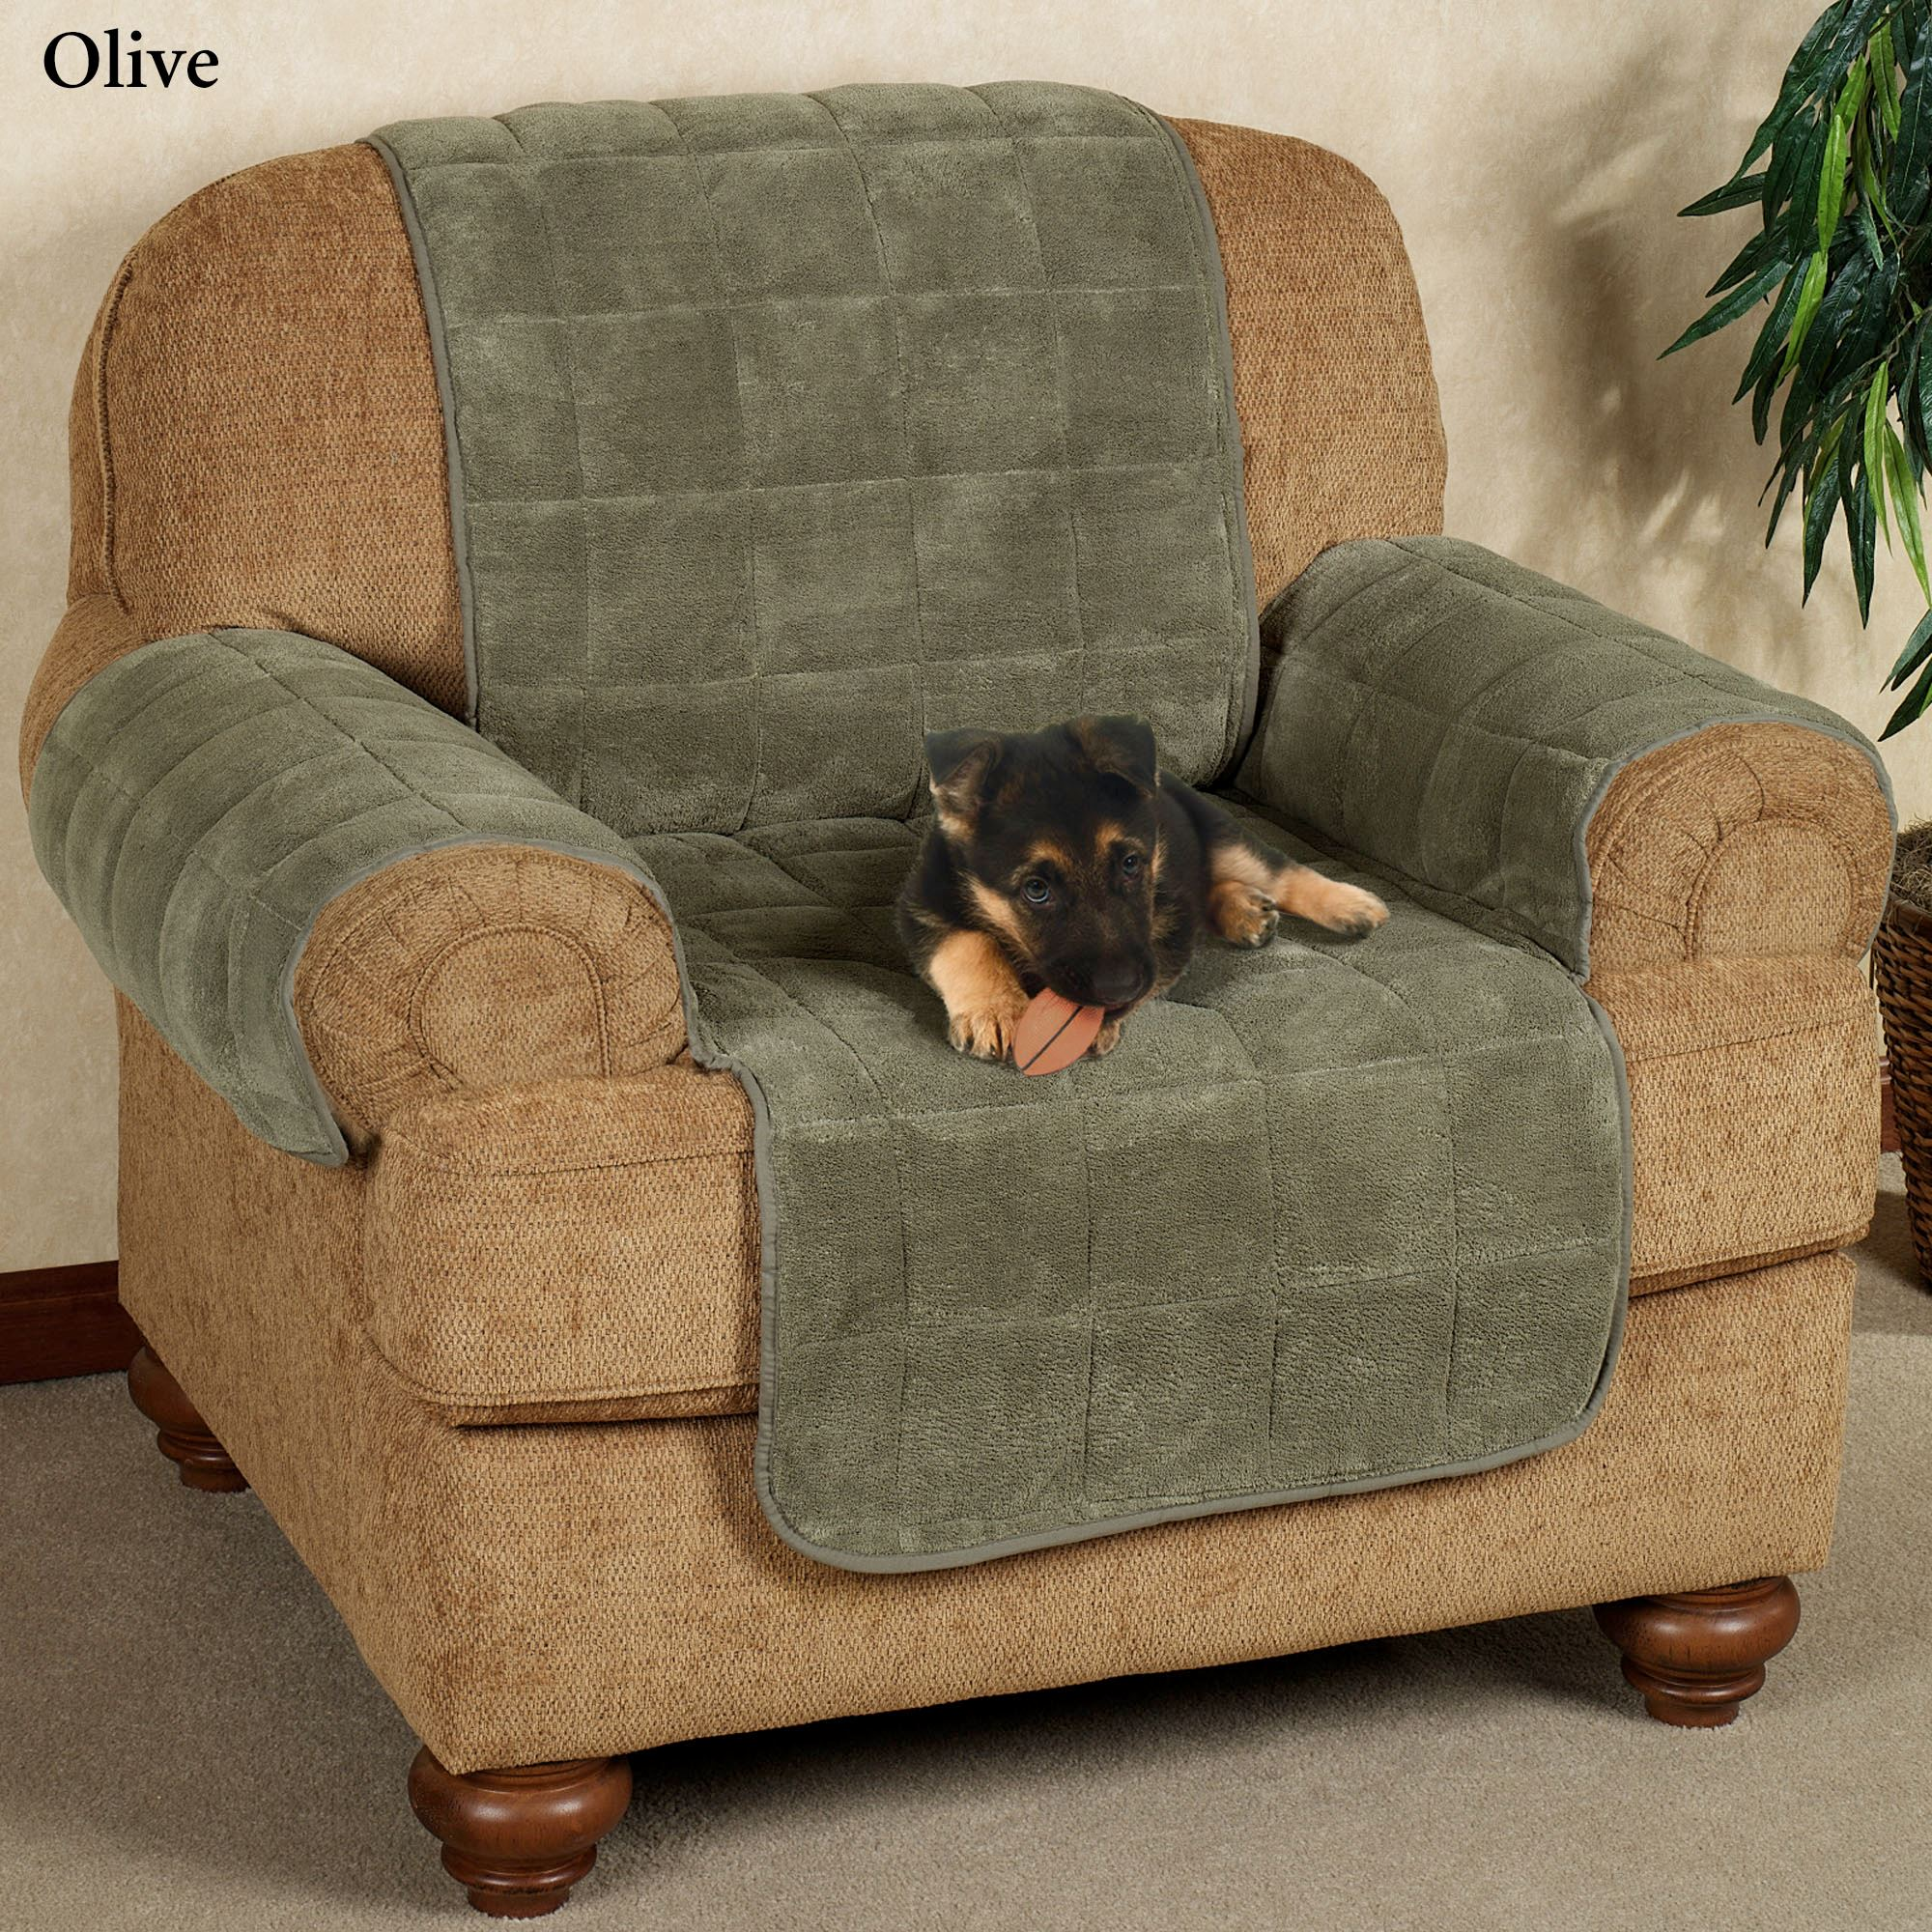 Loveseat Furniture Protector